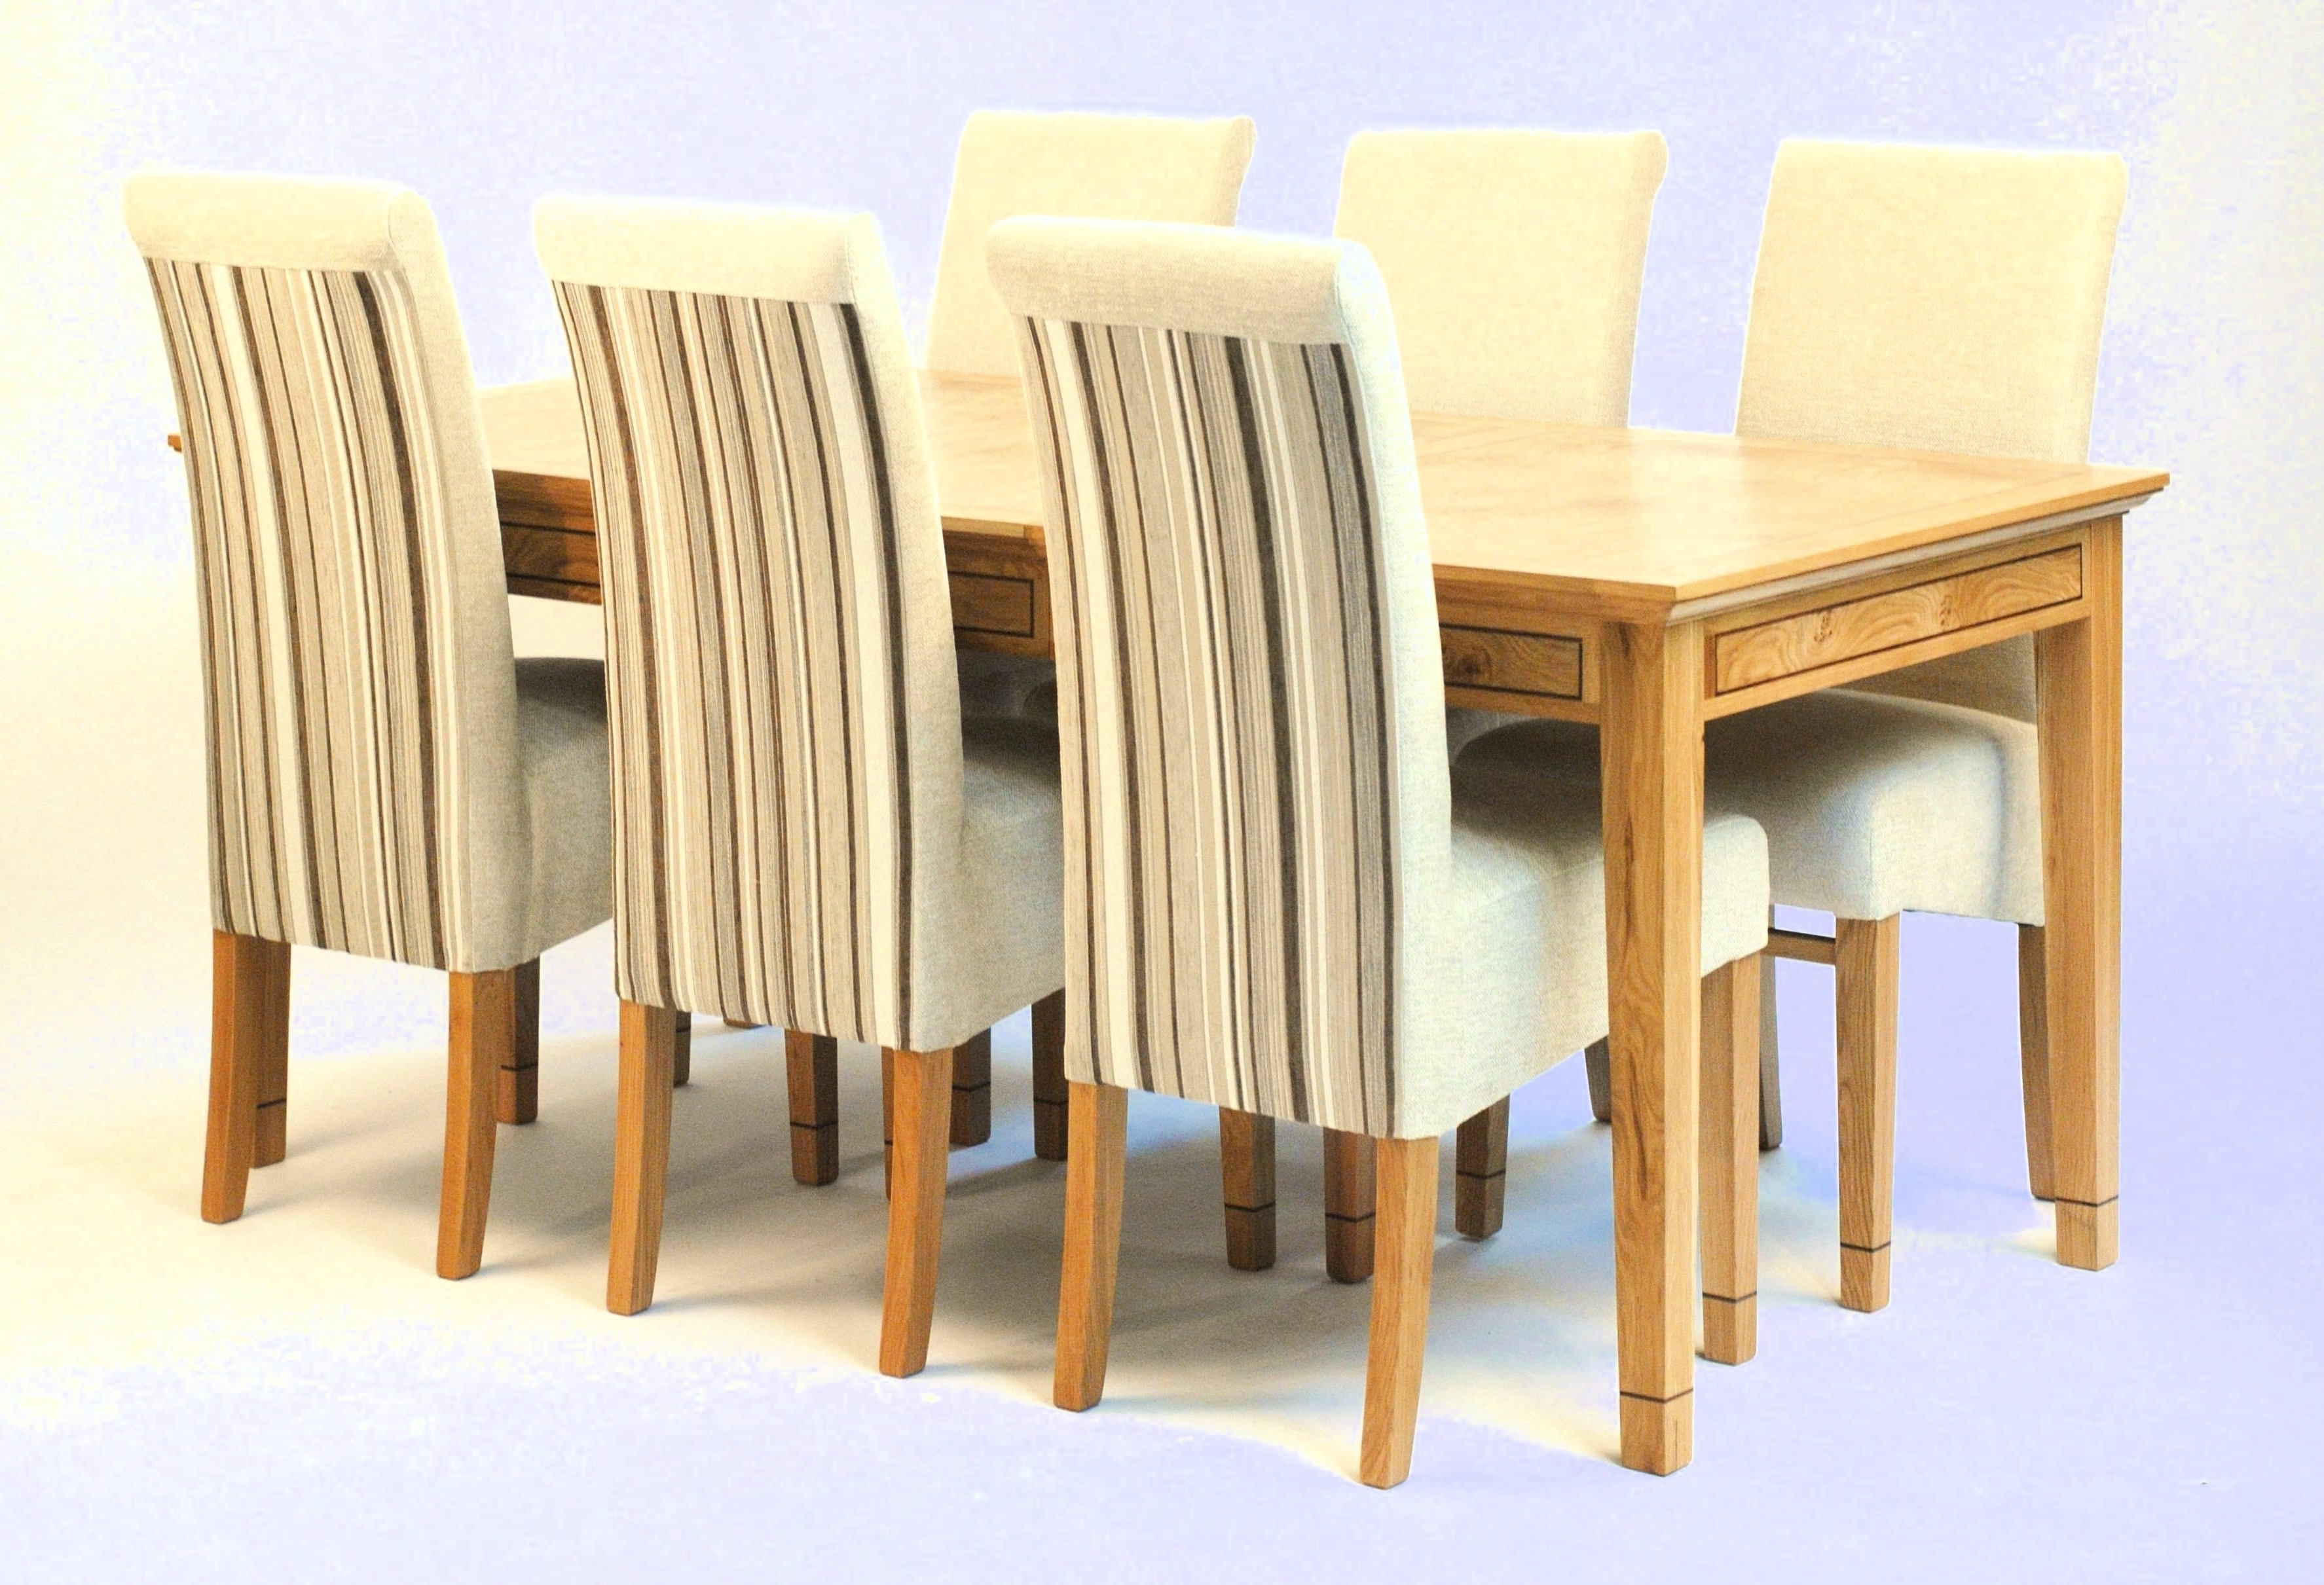 Extending Dining Tables 6 Chairs For Recent Oak Extending Dining Table & 6 Chairs (View 11 of 25)